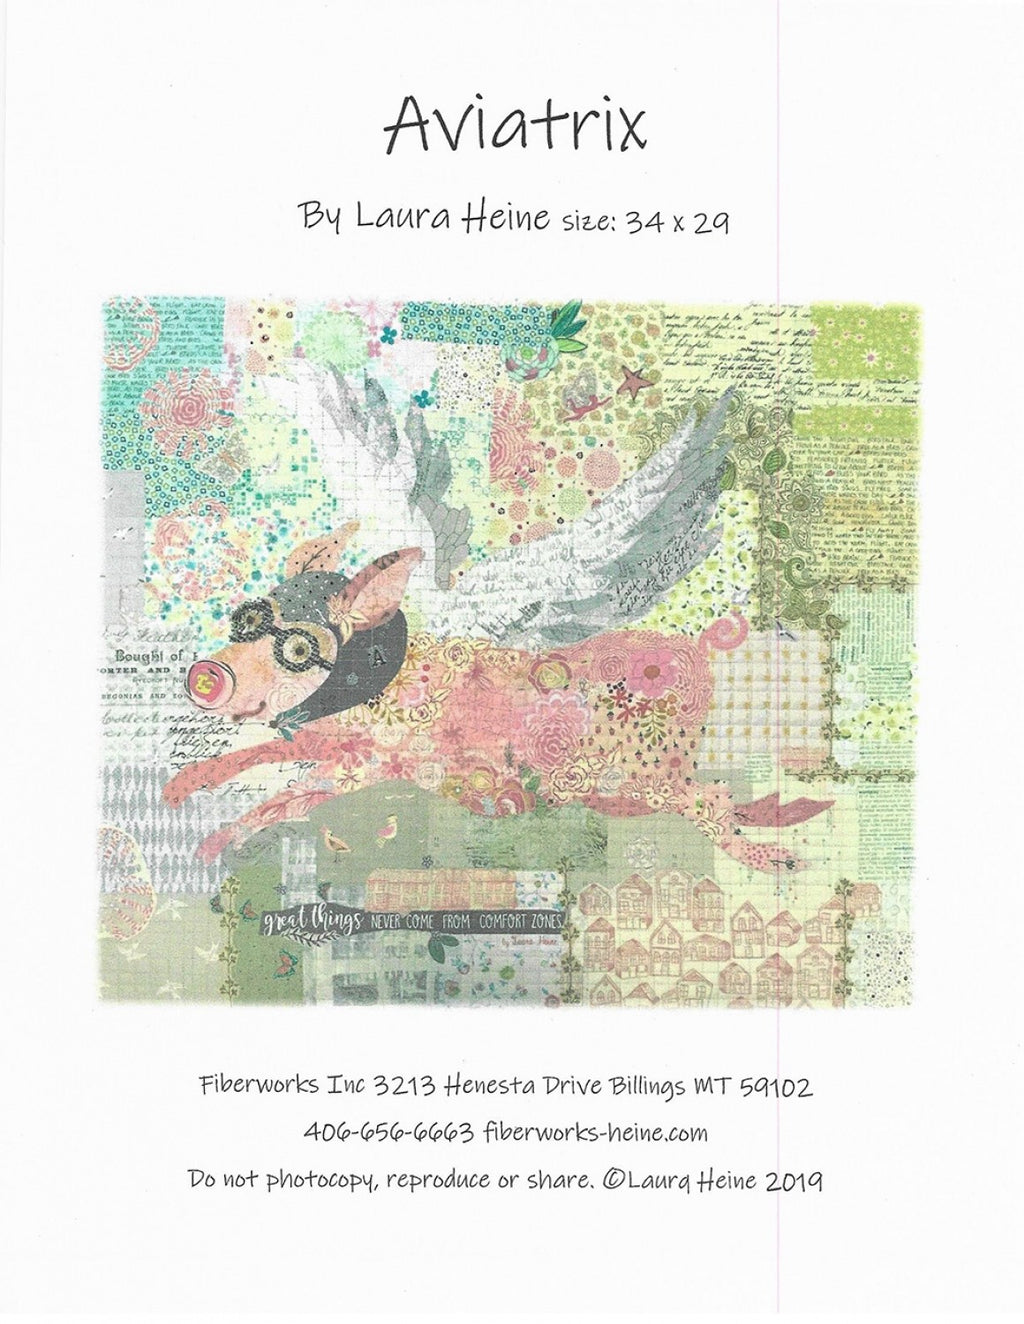 Aviatrix (Flying Pig) Collage Quilt Pattern by Laura Heine - LHFWAVIATRIX